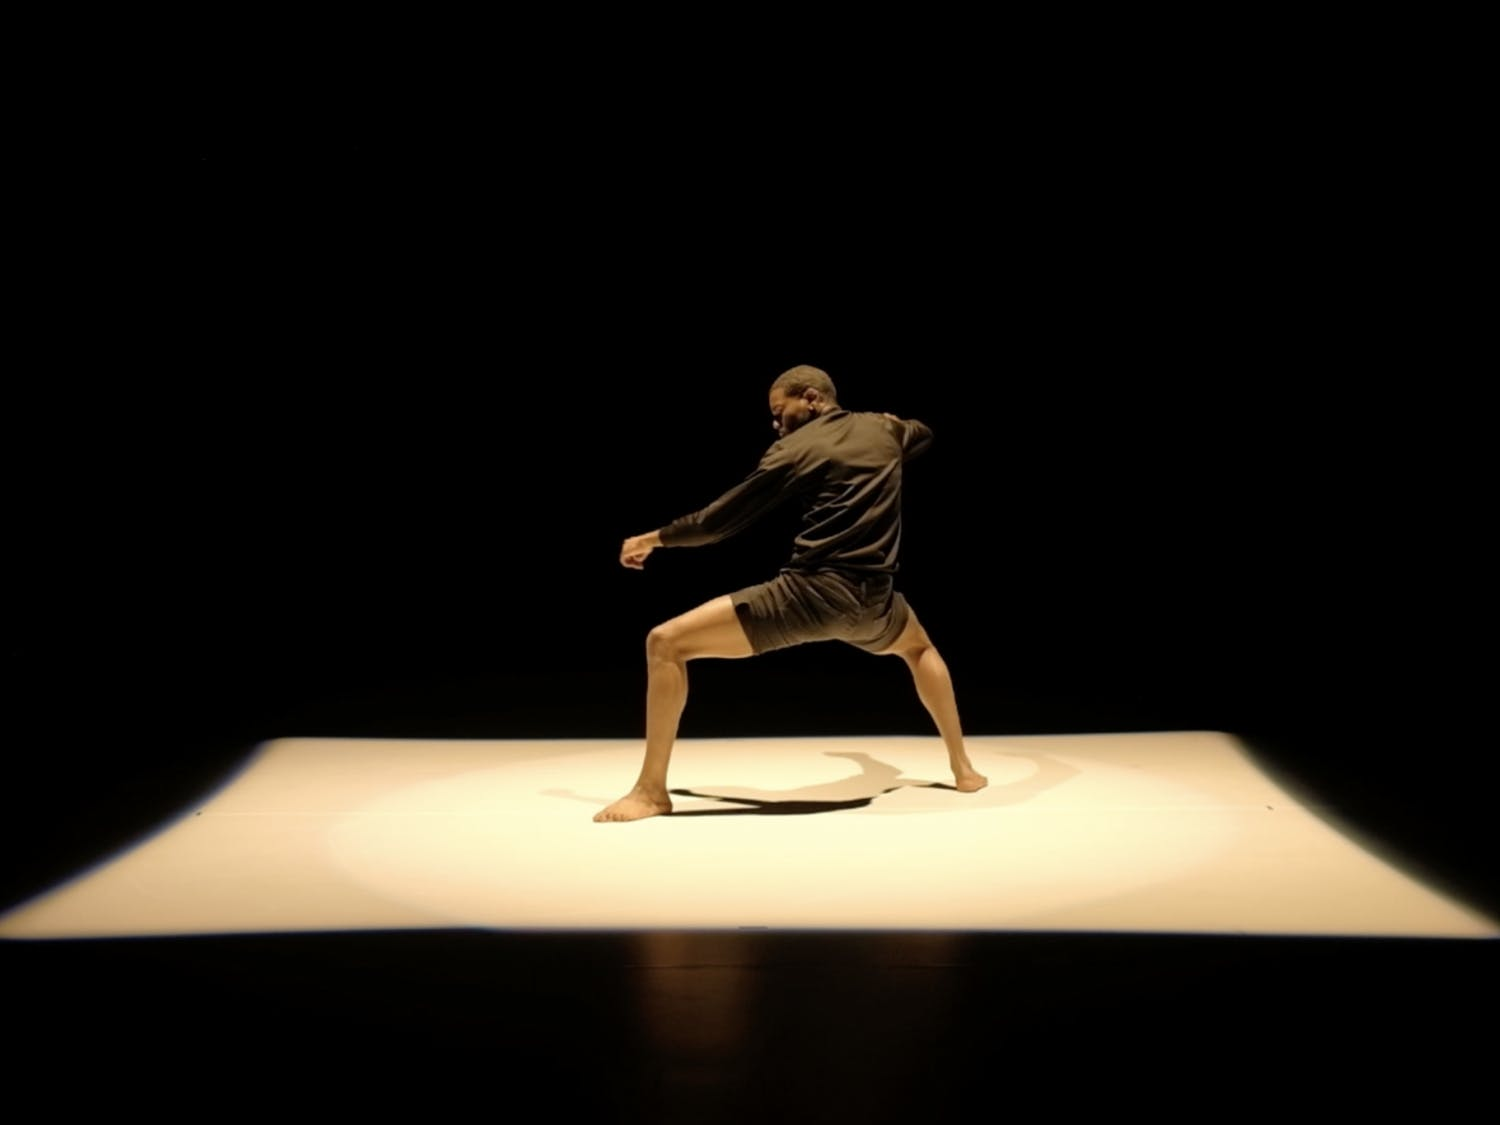 """Anthony """"AyJaye"""" Nelson's dance performance called Pain, Trauma, Triumph, will be the first performance to be live streamed in the Carolina Performing Arts' Commons Festival. Photo courtesy of Wo Imaging."""